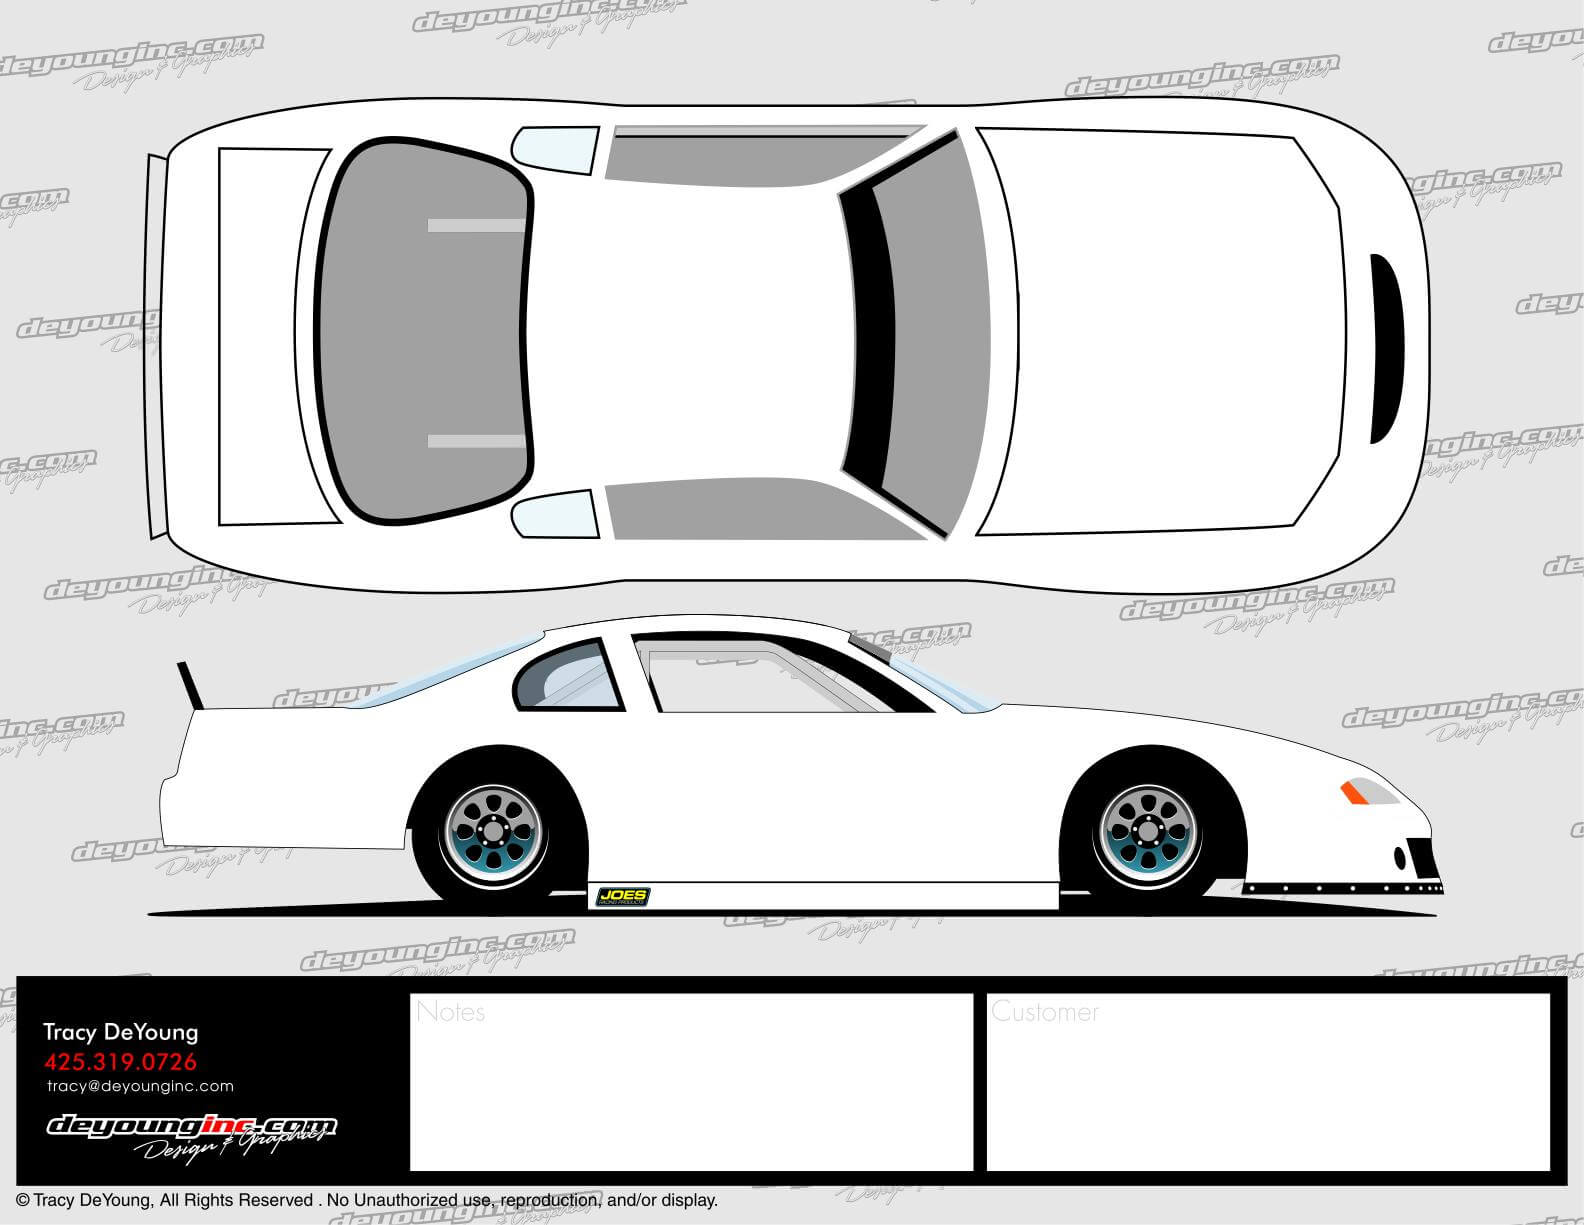 Car Design Templates - Colona.rsd7 Pertaining To Blank Race Car Templates